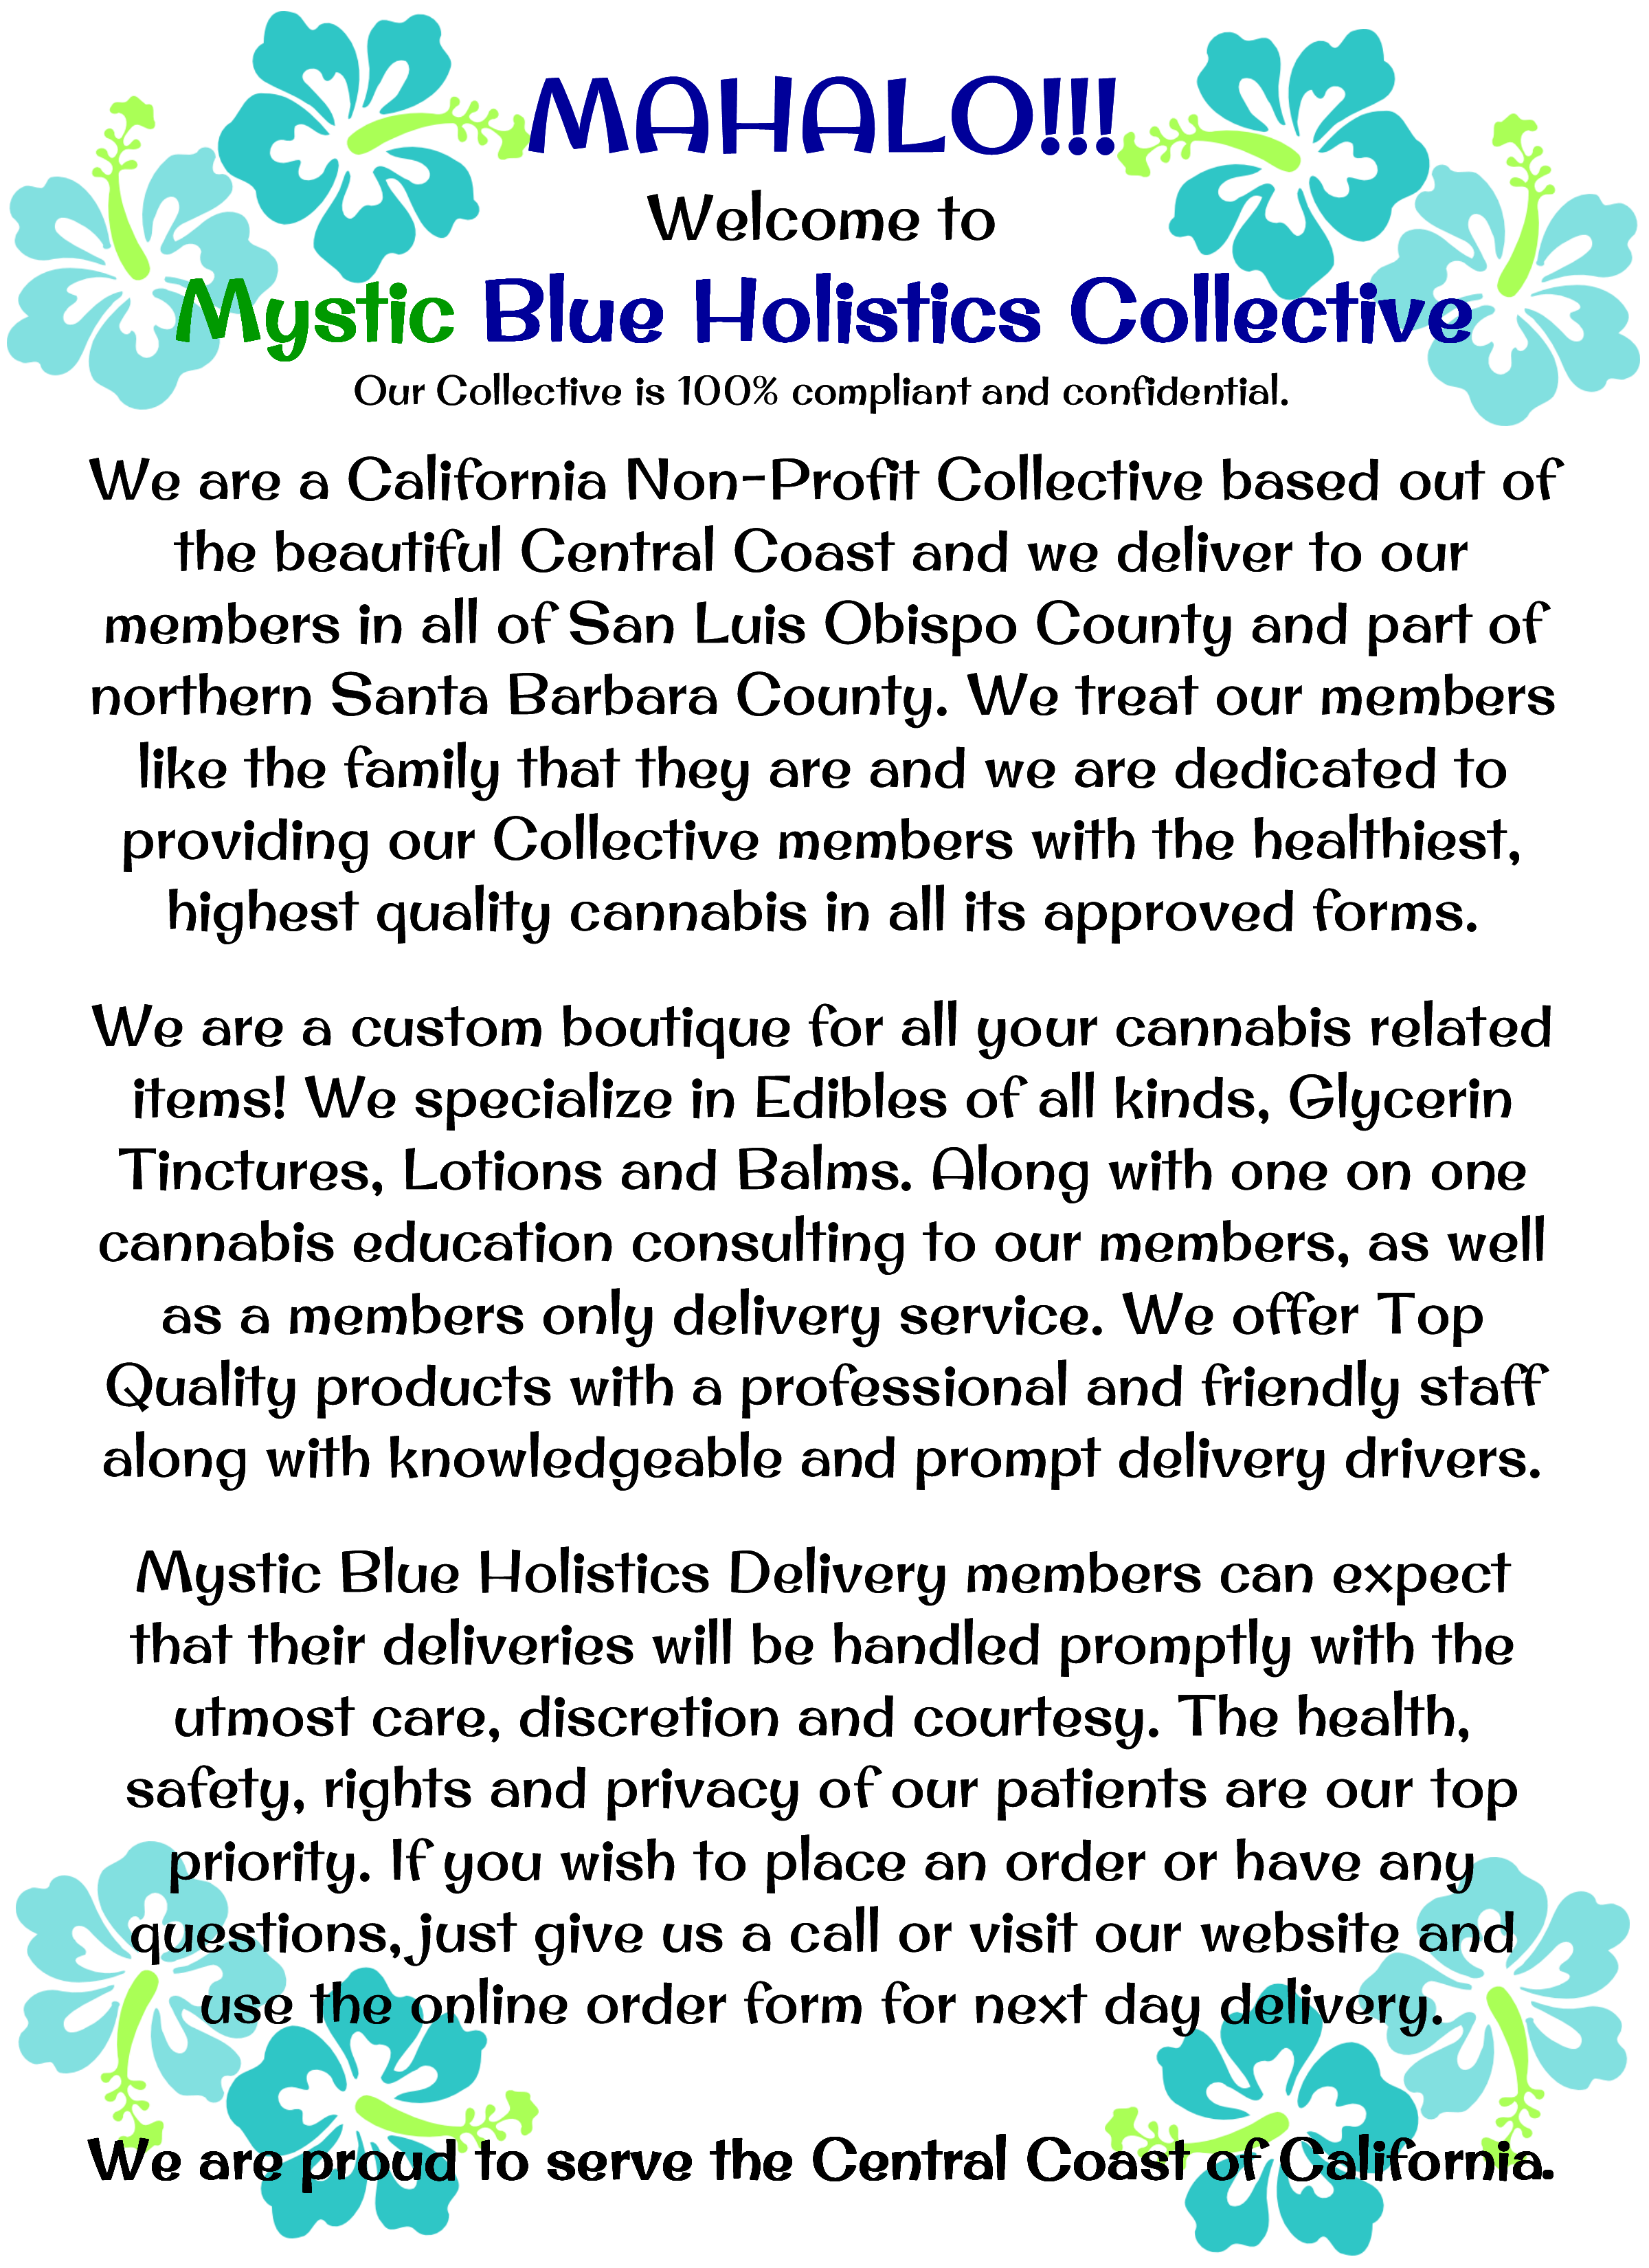 Mystic Blue Holistics Collective and Delivery